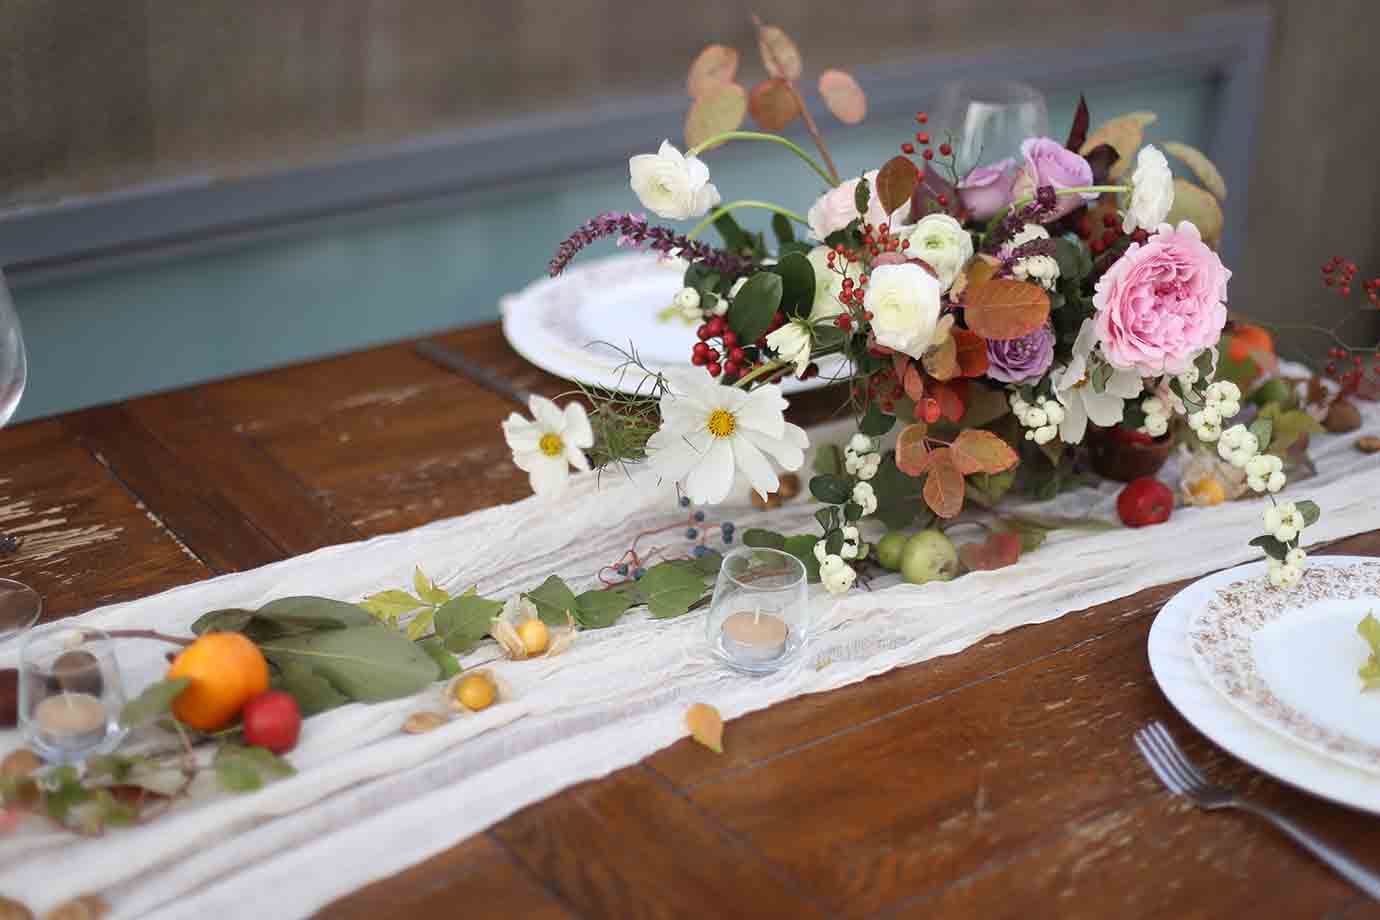 hart-floral-portland-wedding-flowers-20